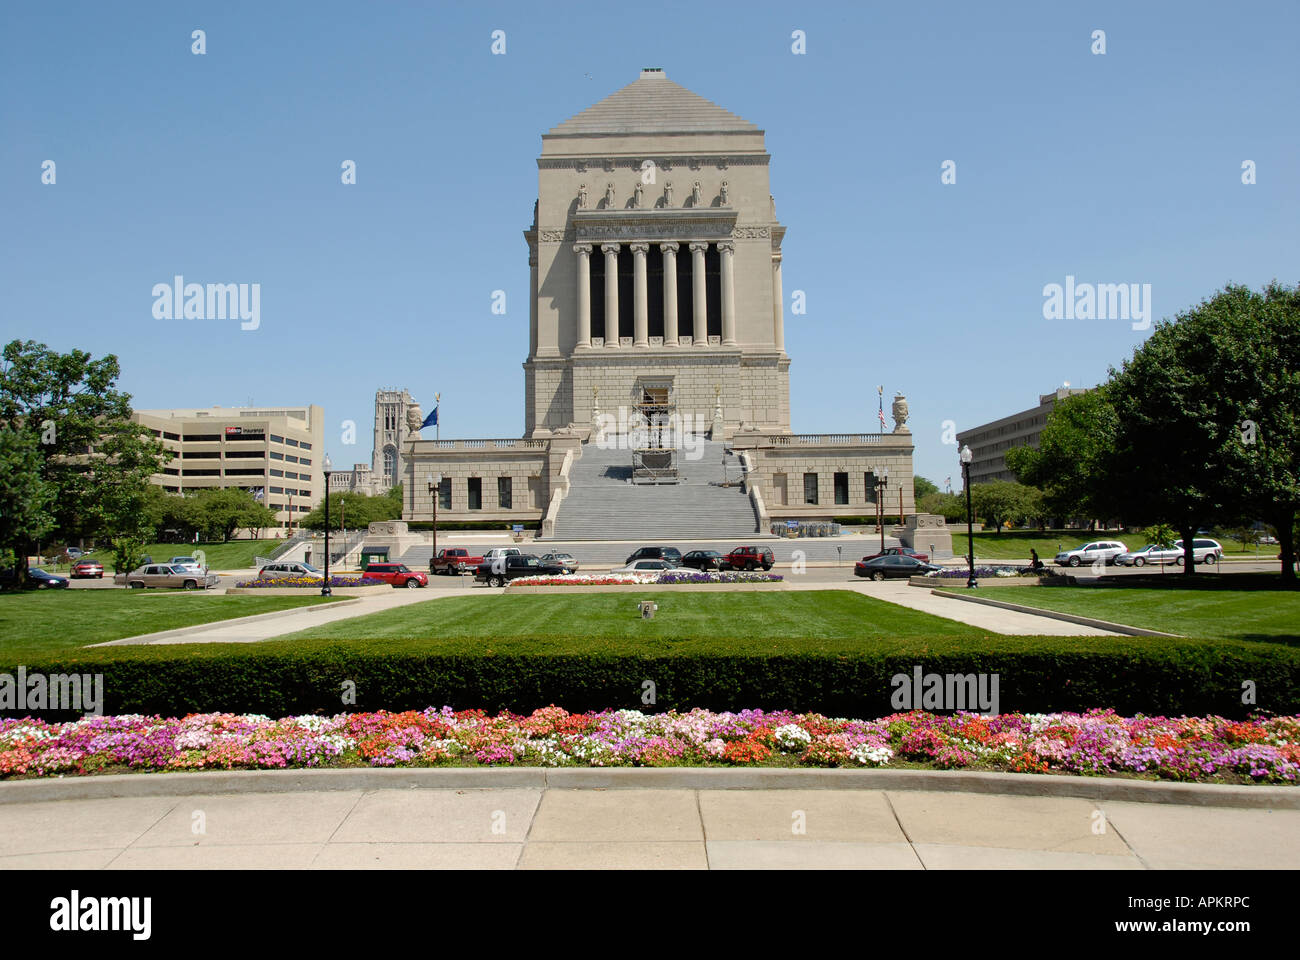 University Park World War Memorial combating the War history located downtown Indianapolis Indiana IN - Stock Image